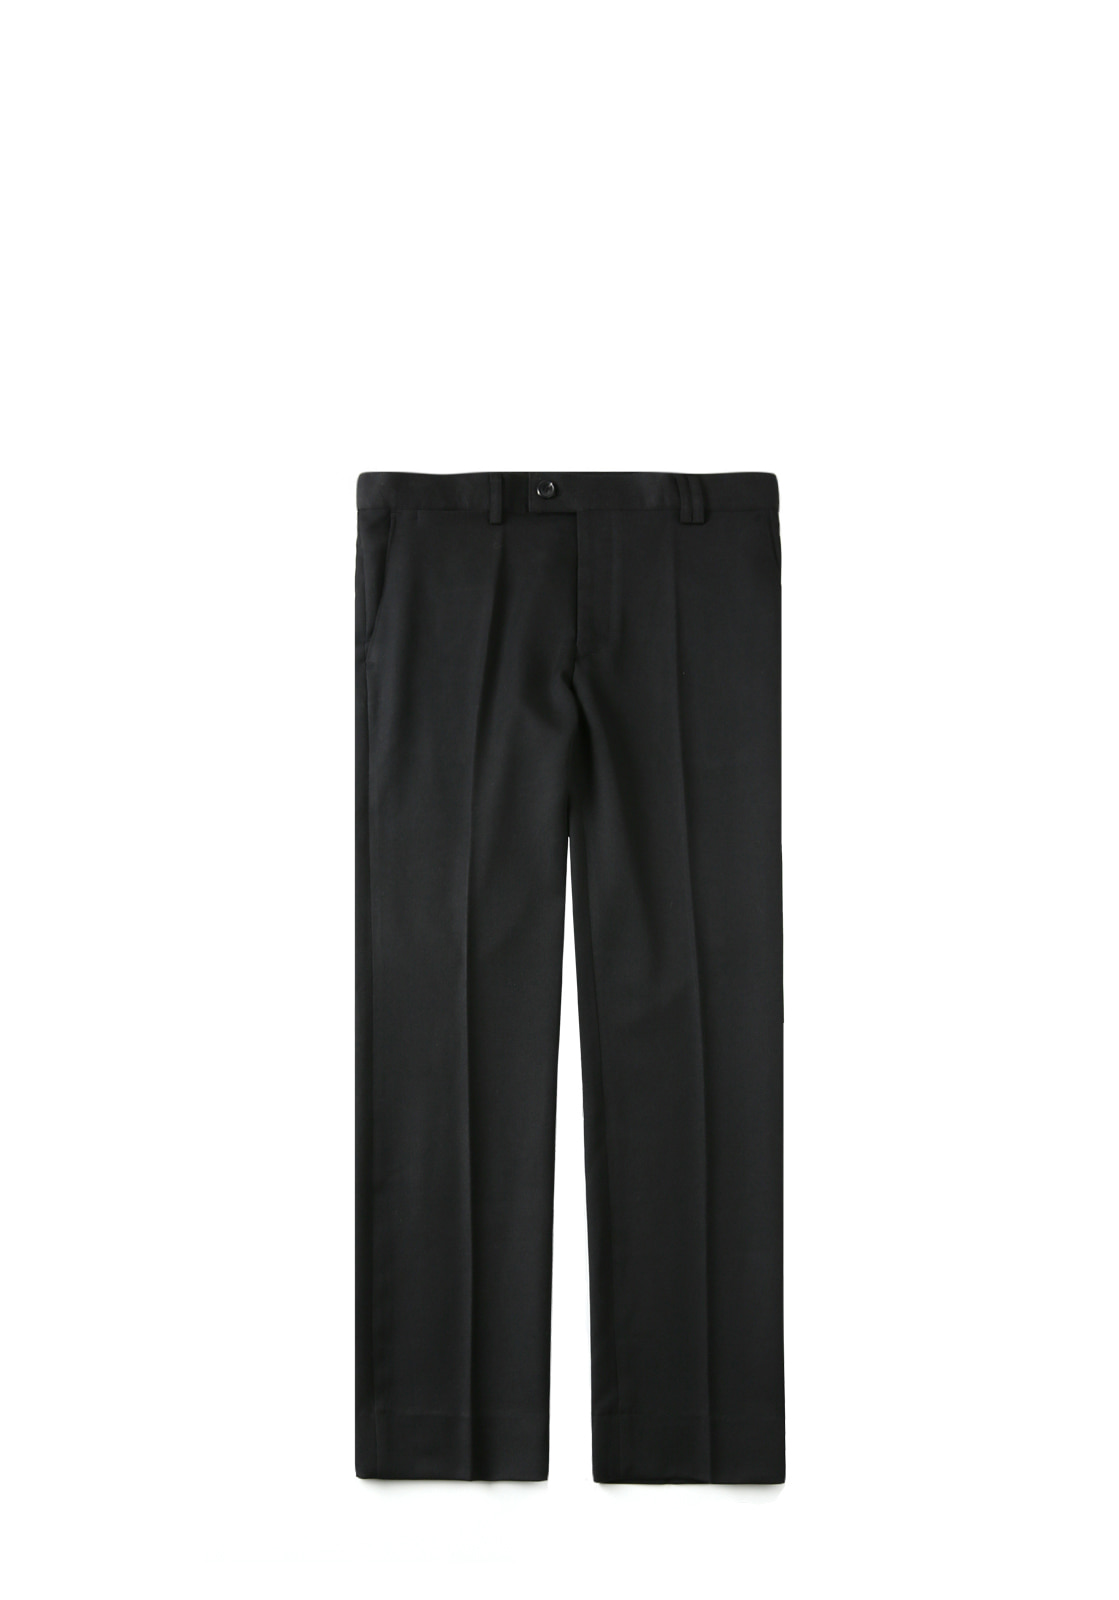 V228 TOURS CROP SLACKS  BLACK